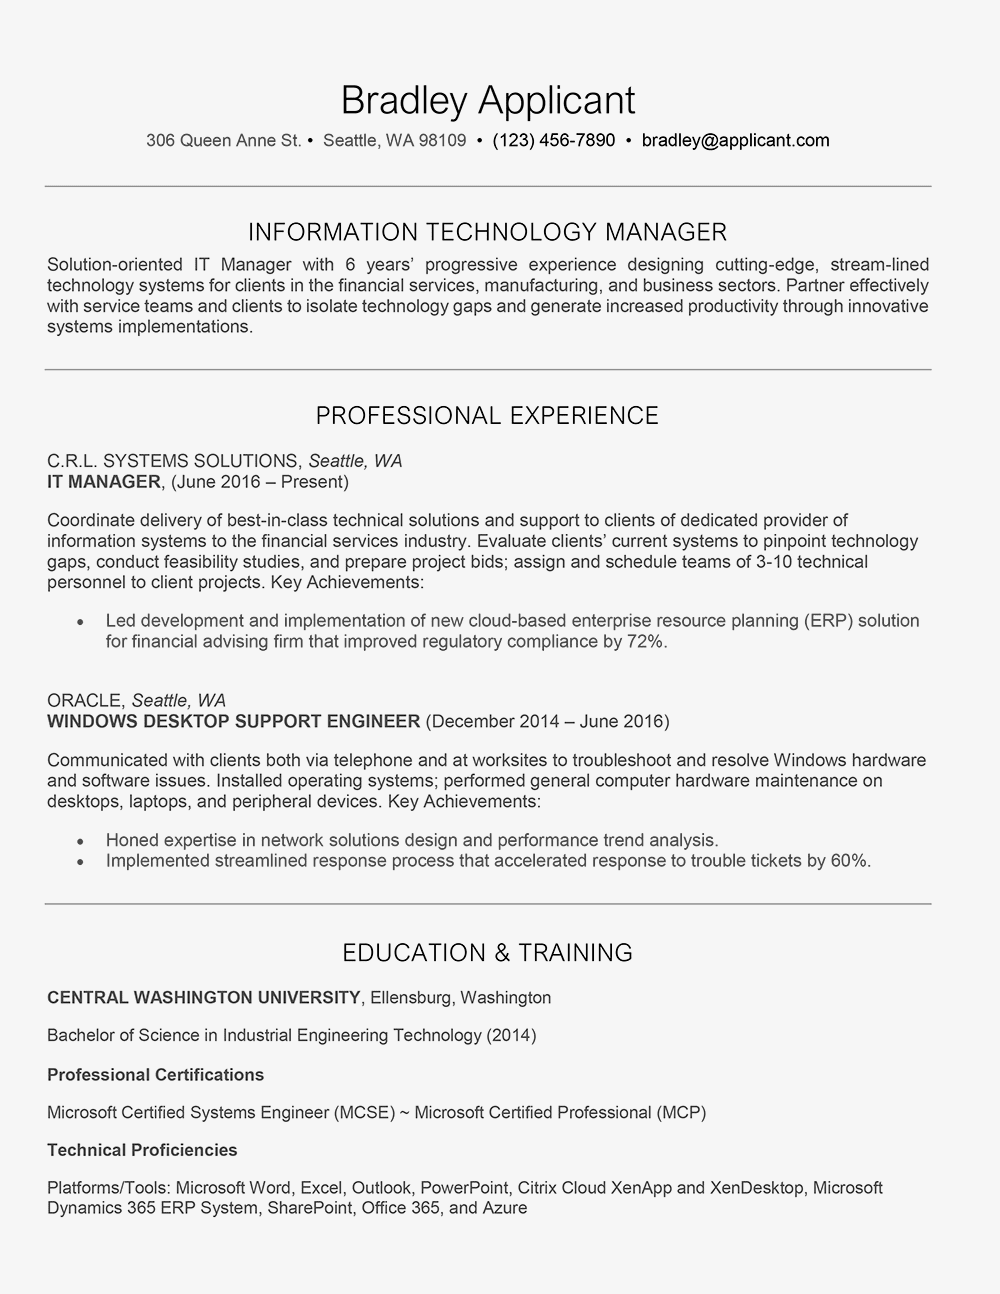 IT Manager: Job Description, Resume, Cover Letter, Skills